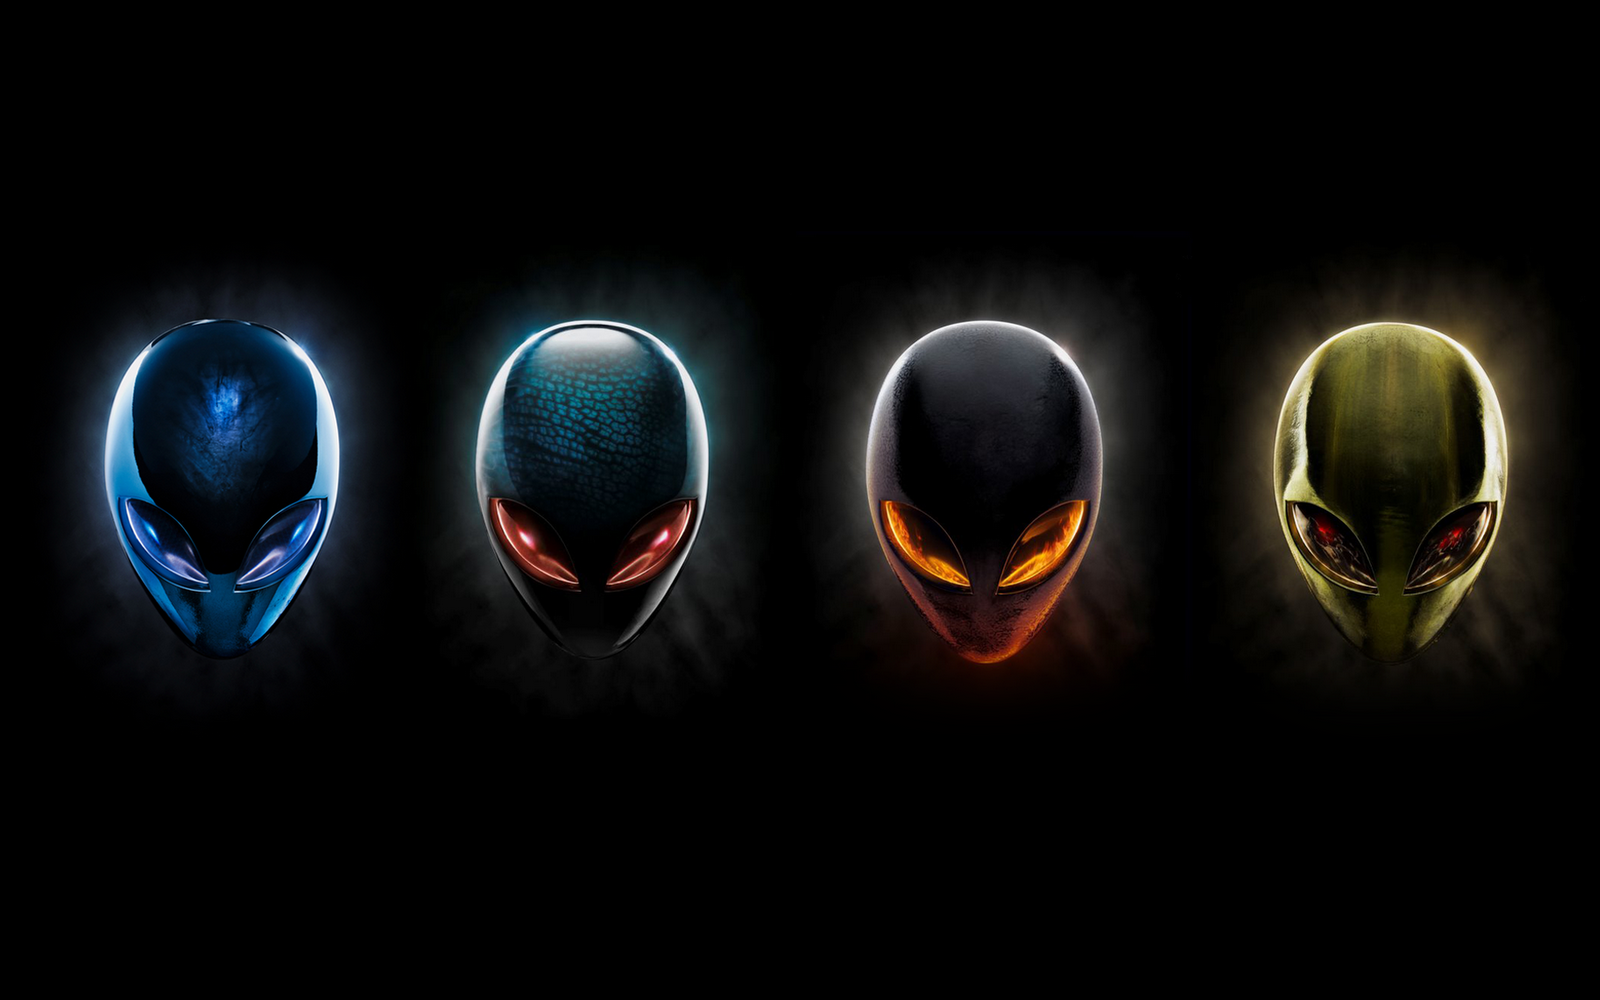 Central Wallpaper: Alienware Logos And HD Wallpapers